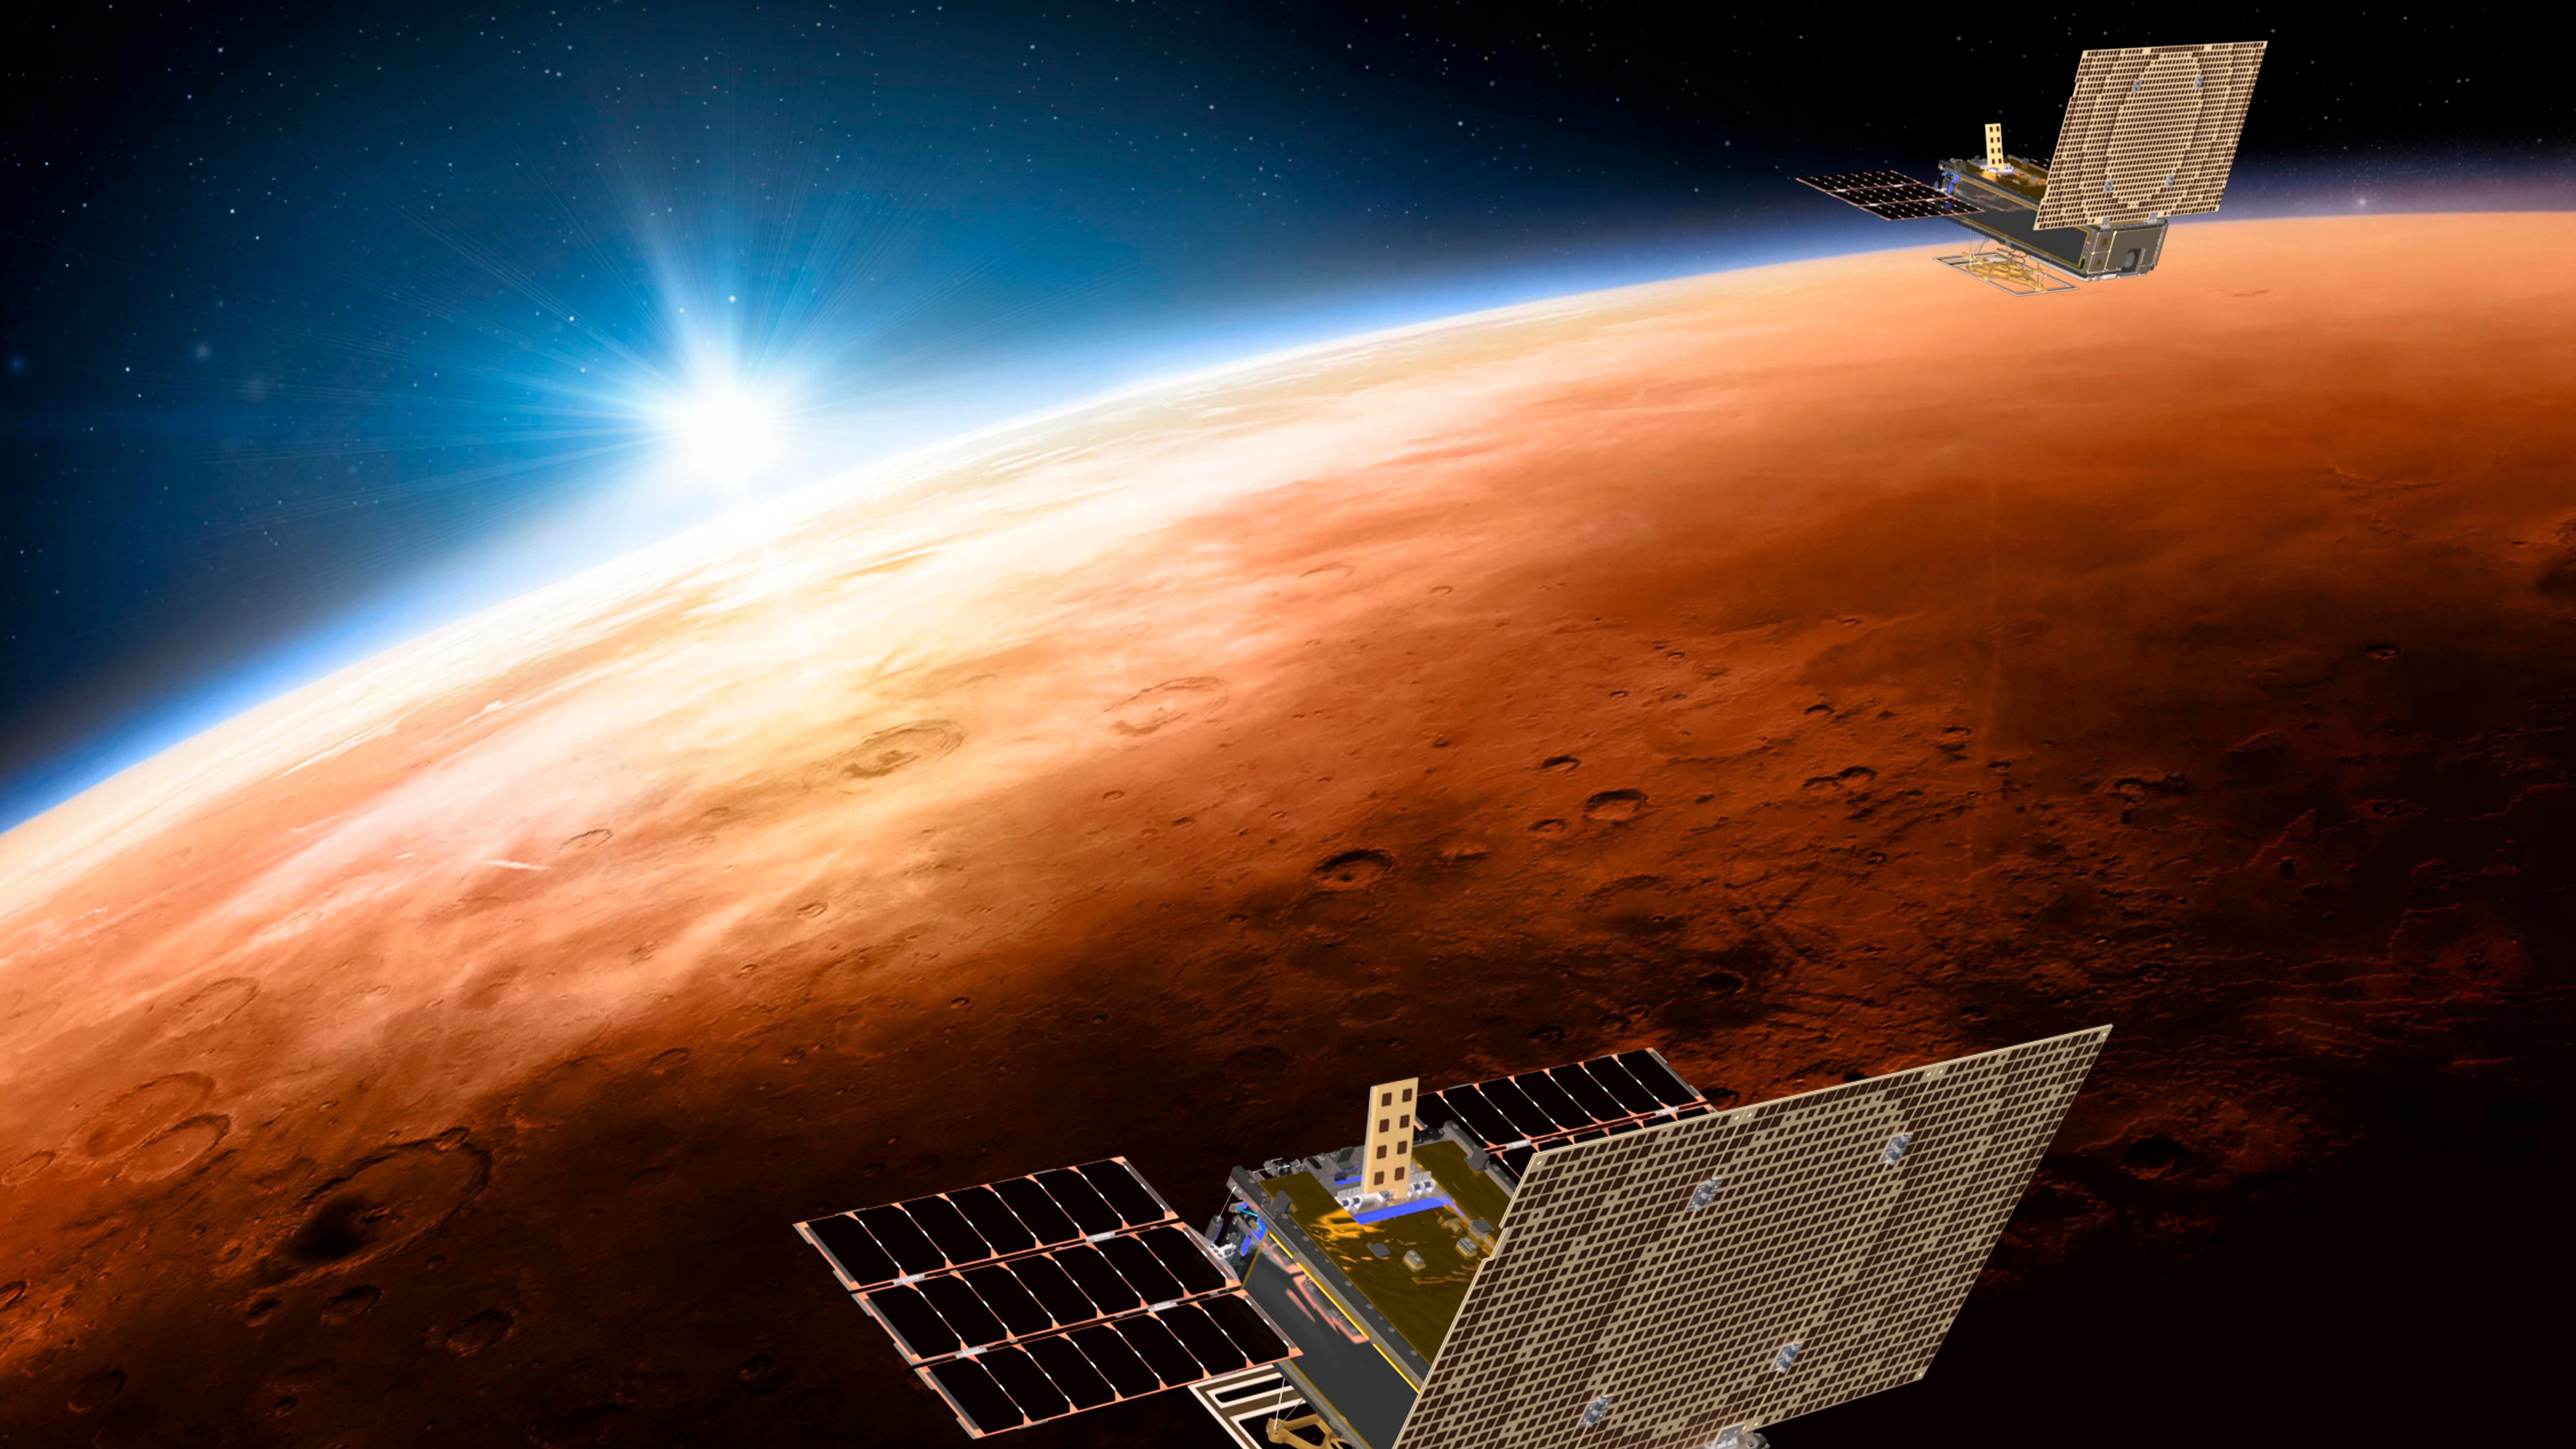 Mars at its brightest until 2035